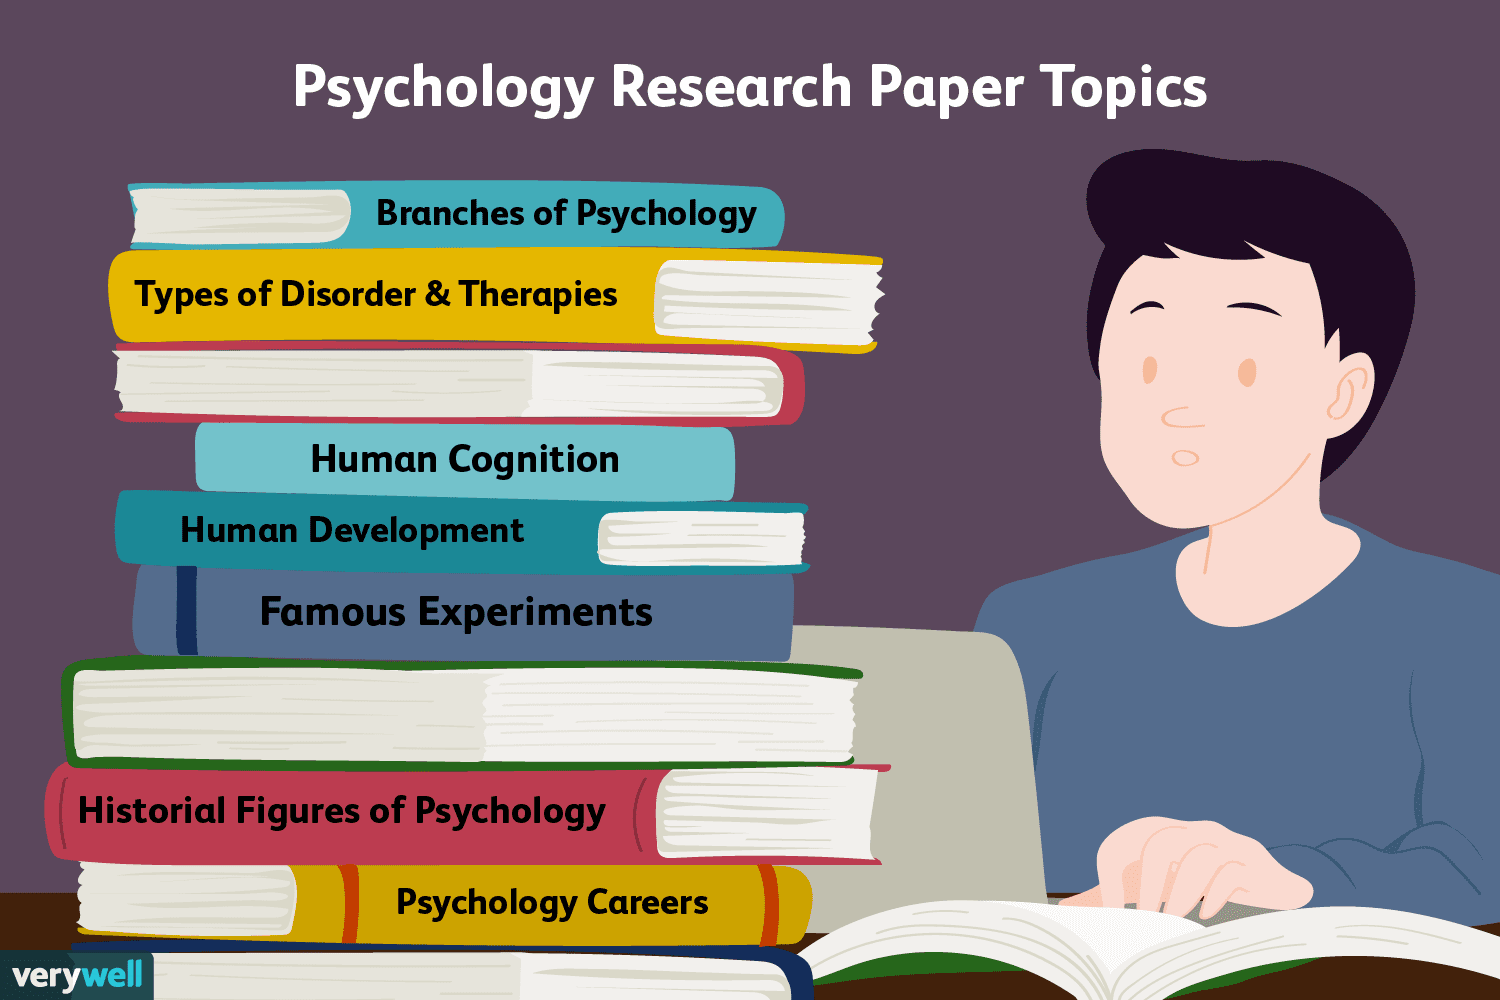 Psychology Research Paper Topics 50 Great Ideas